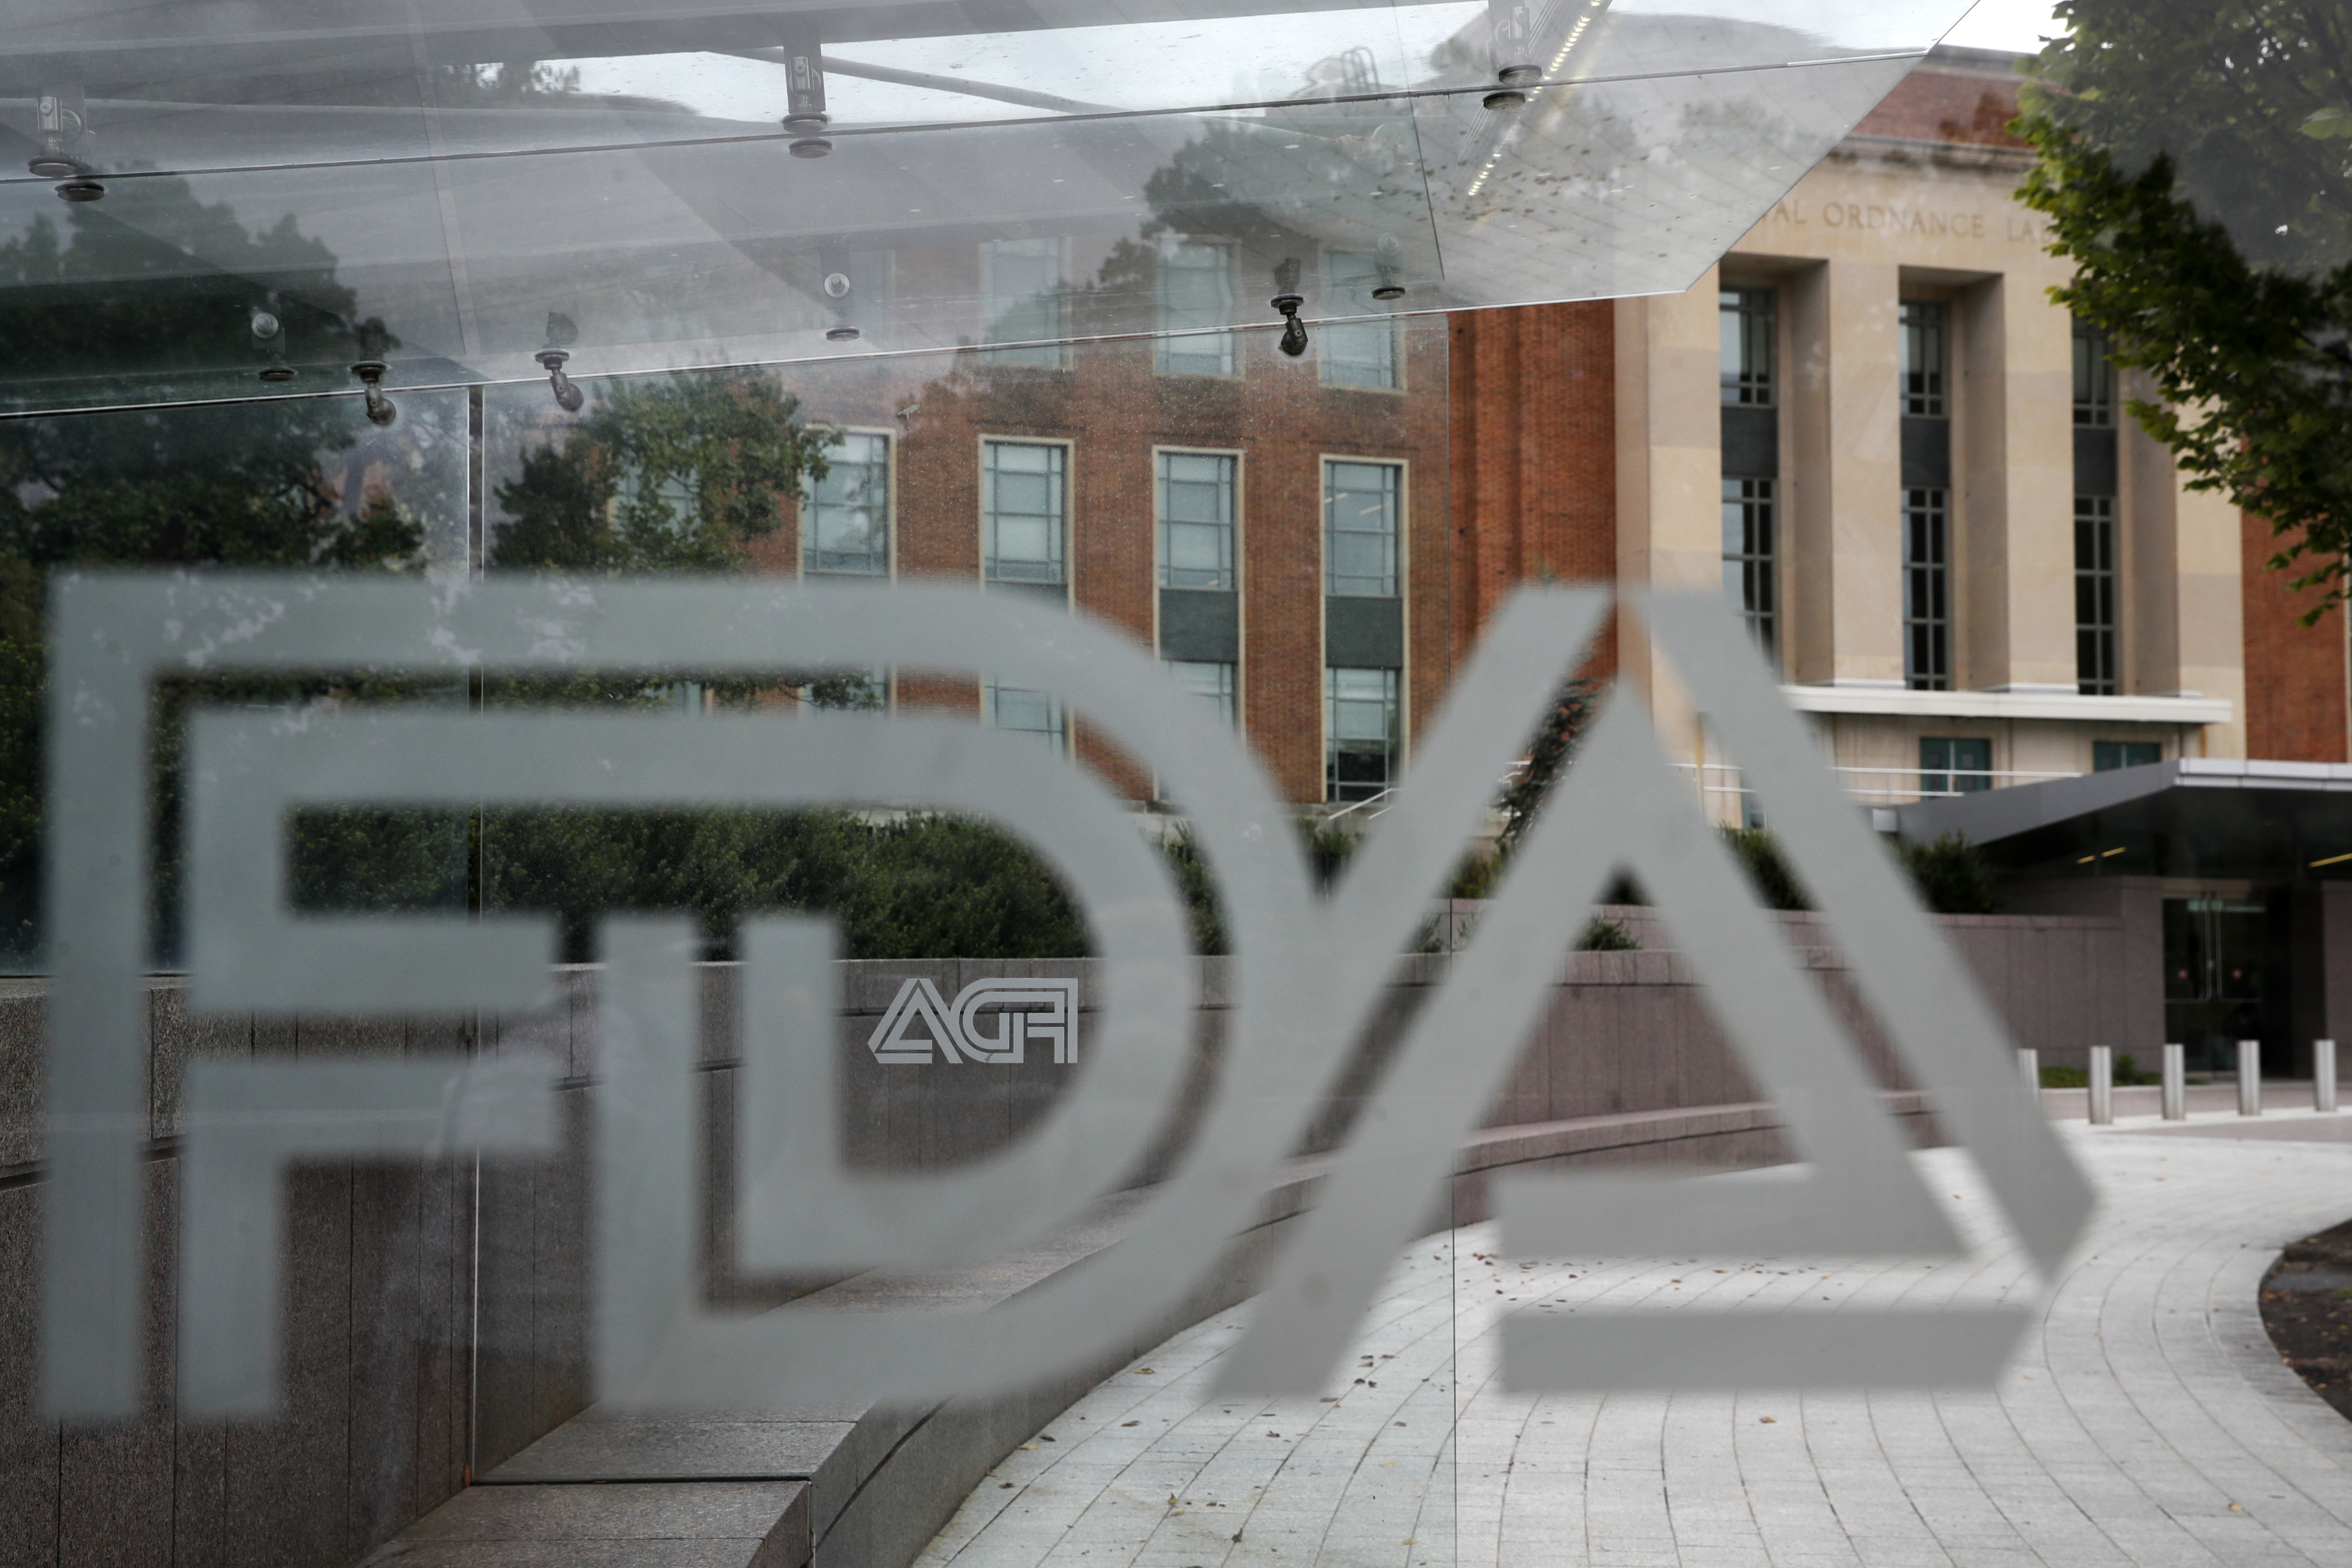 The U.S. Food and Drug Administration building behind FDA logos